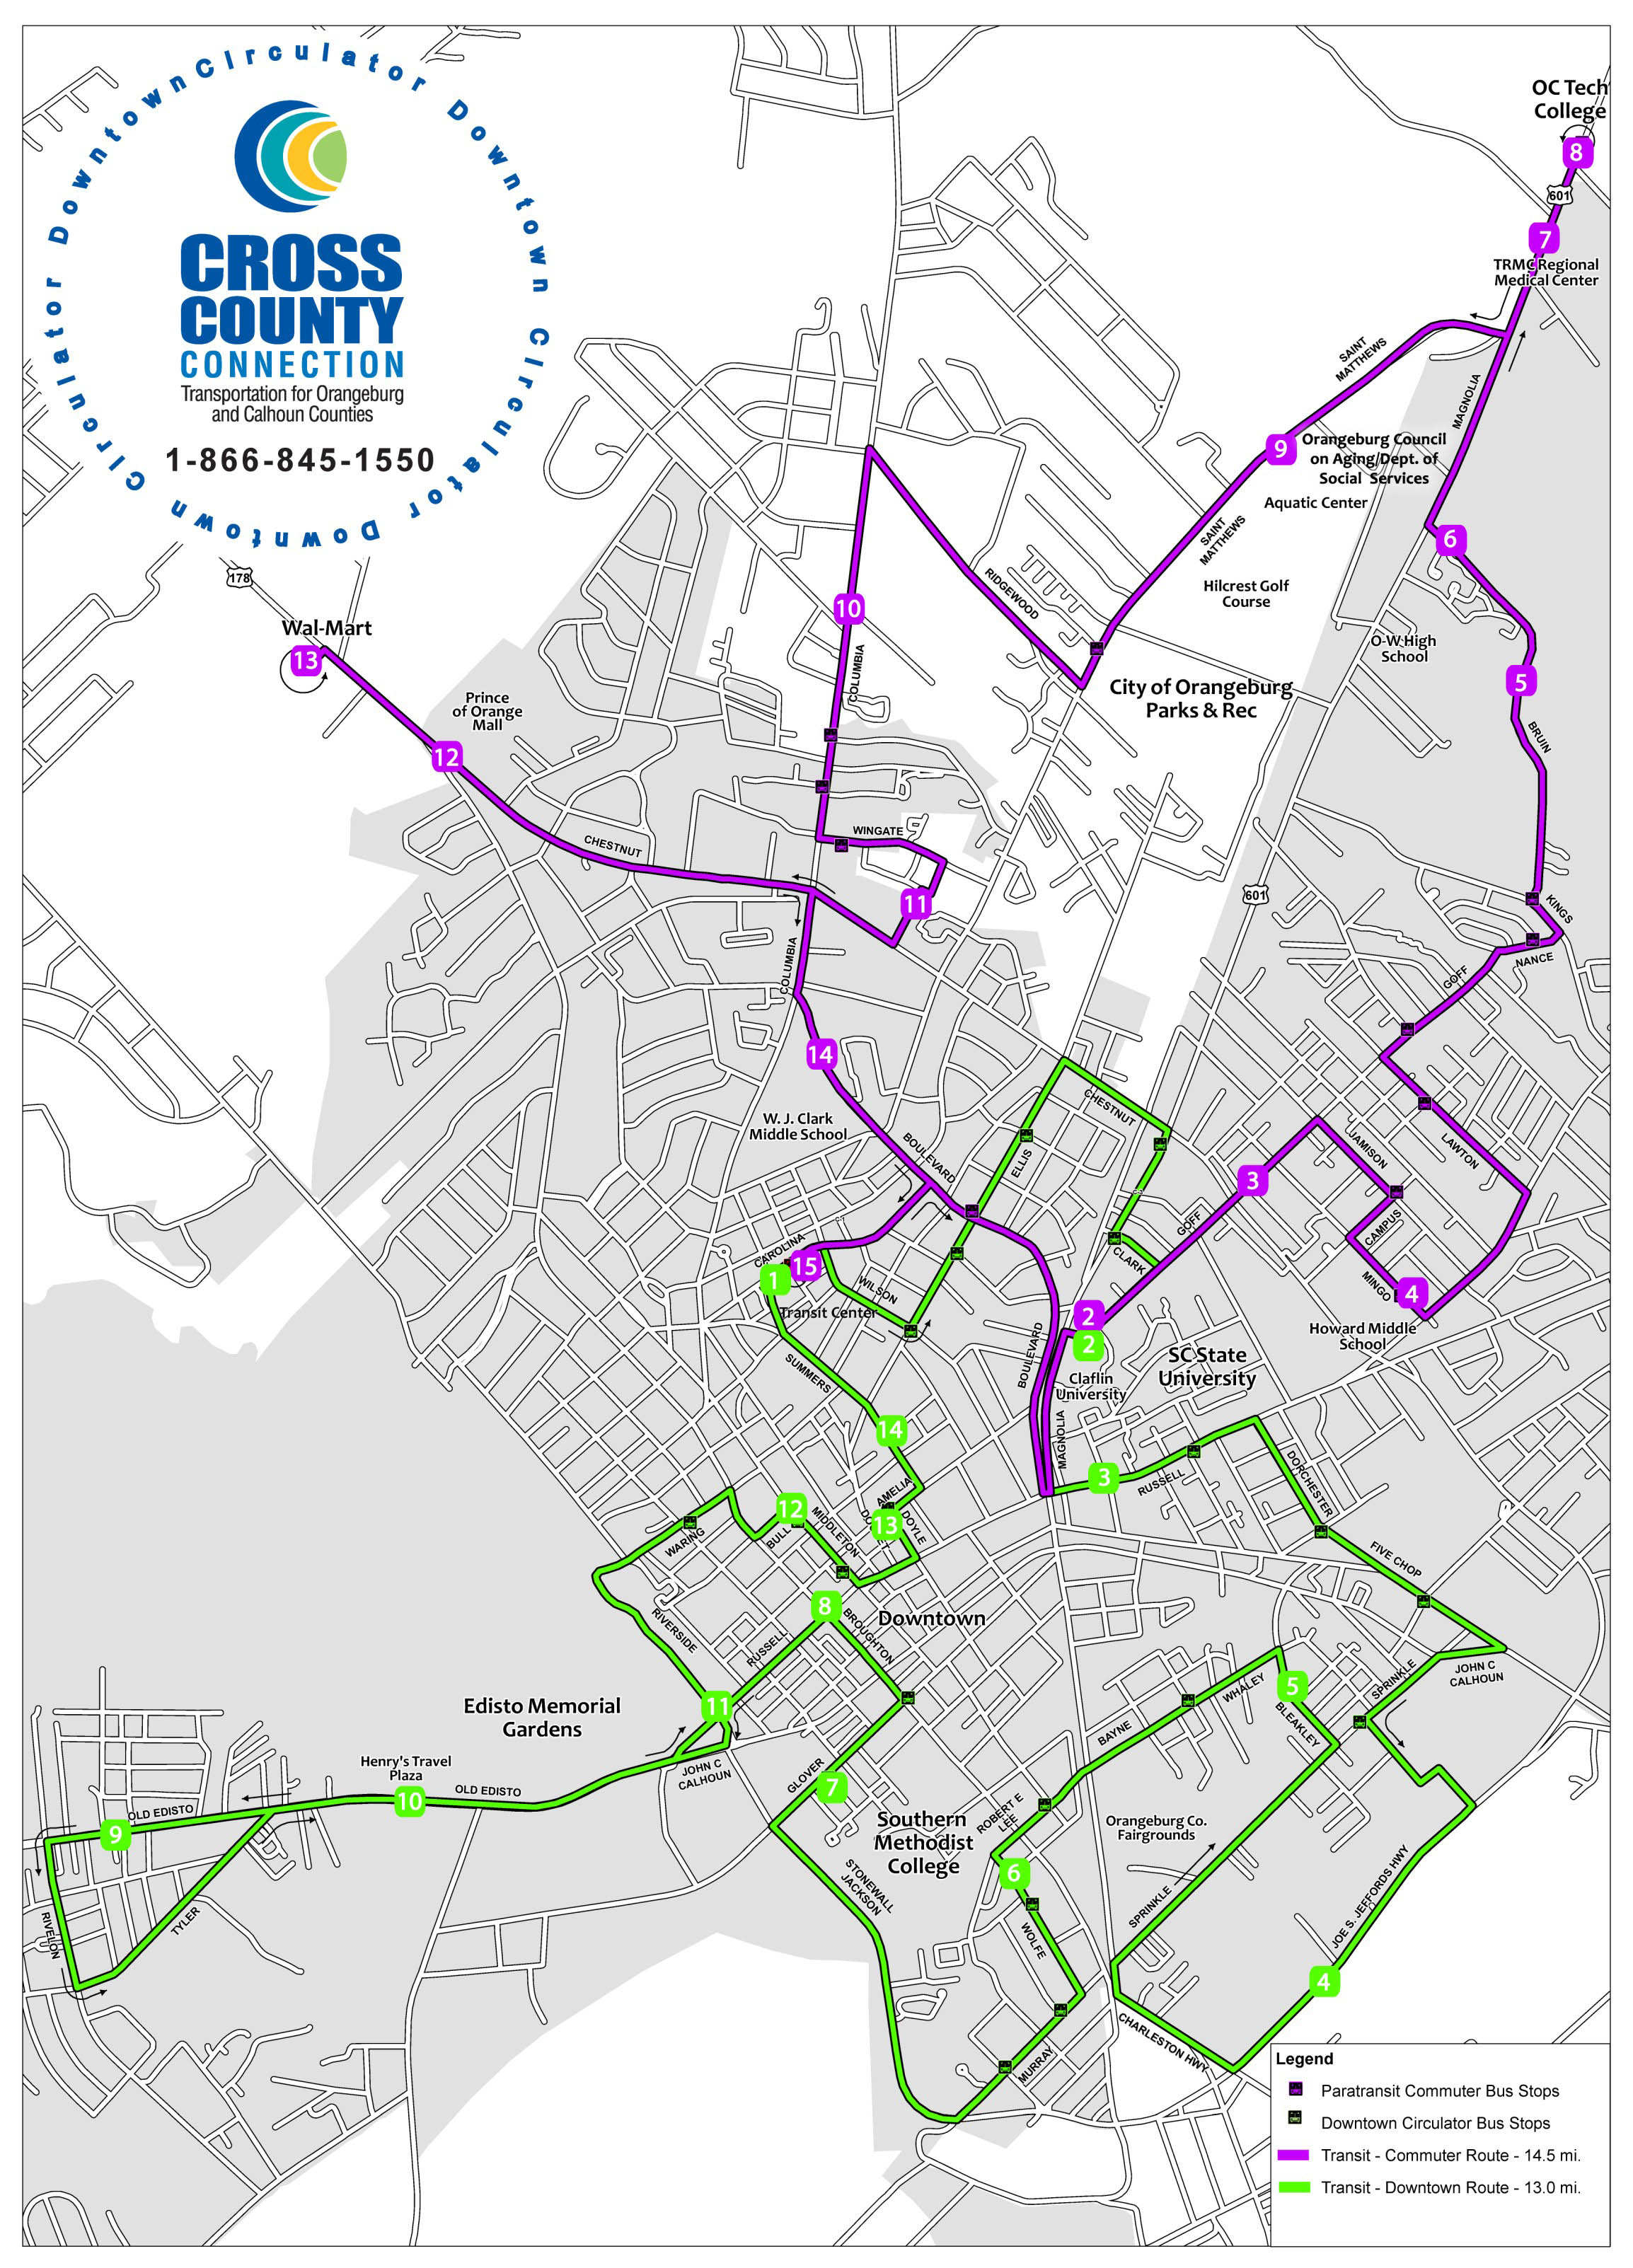 Downtown Circulator Route Map (JPG)